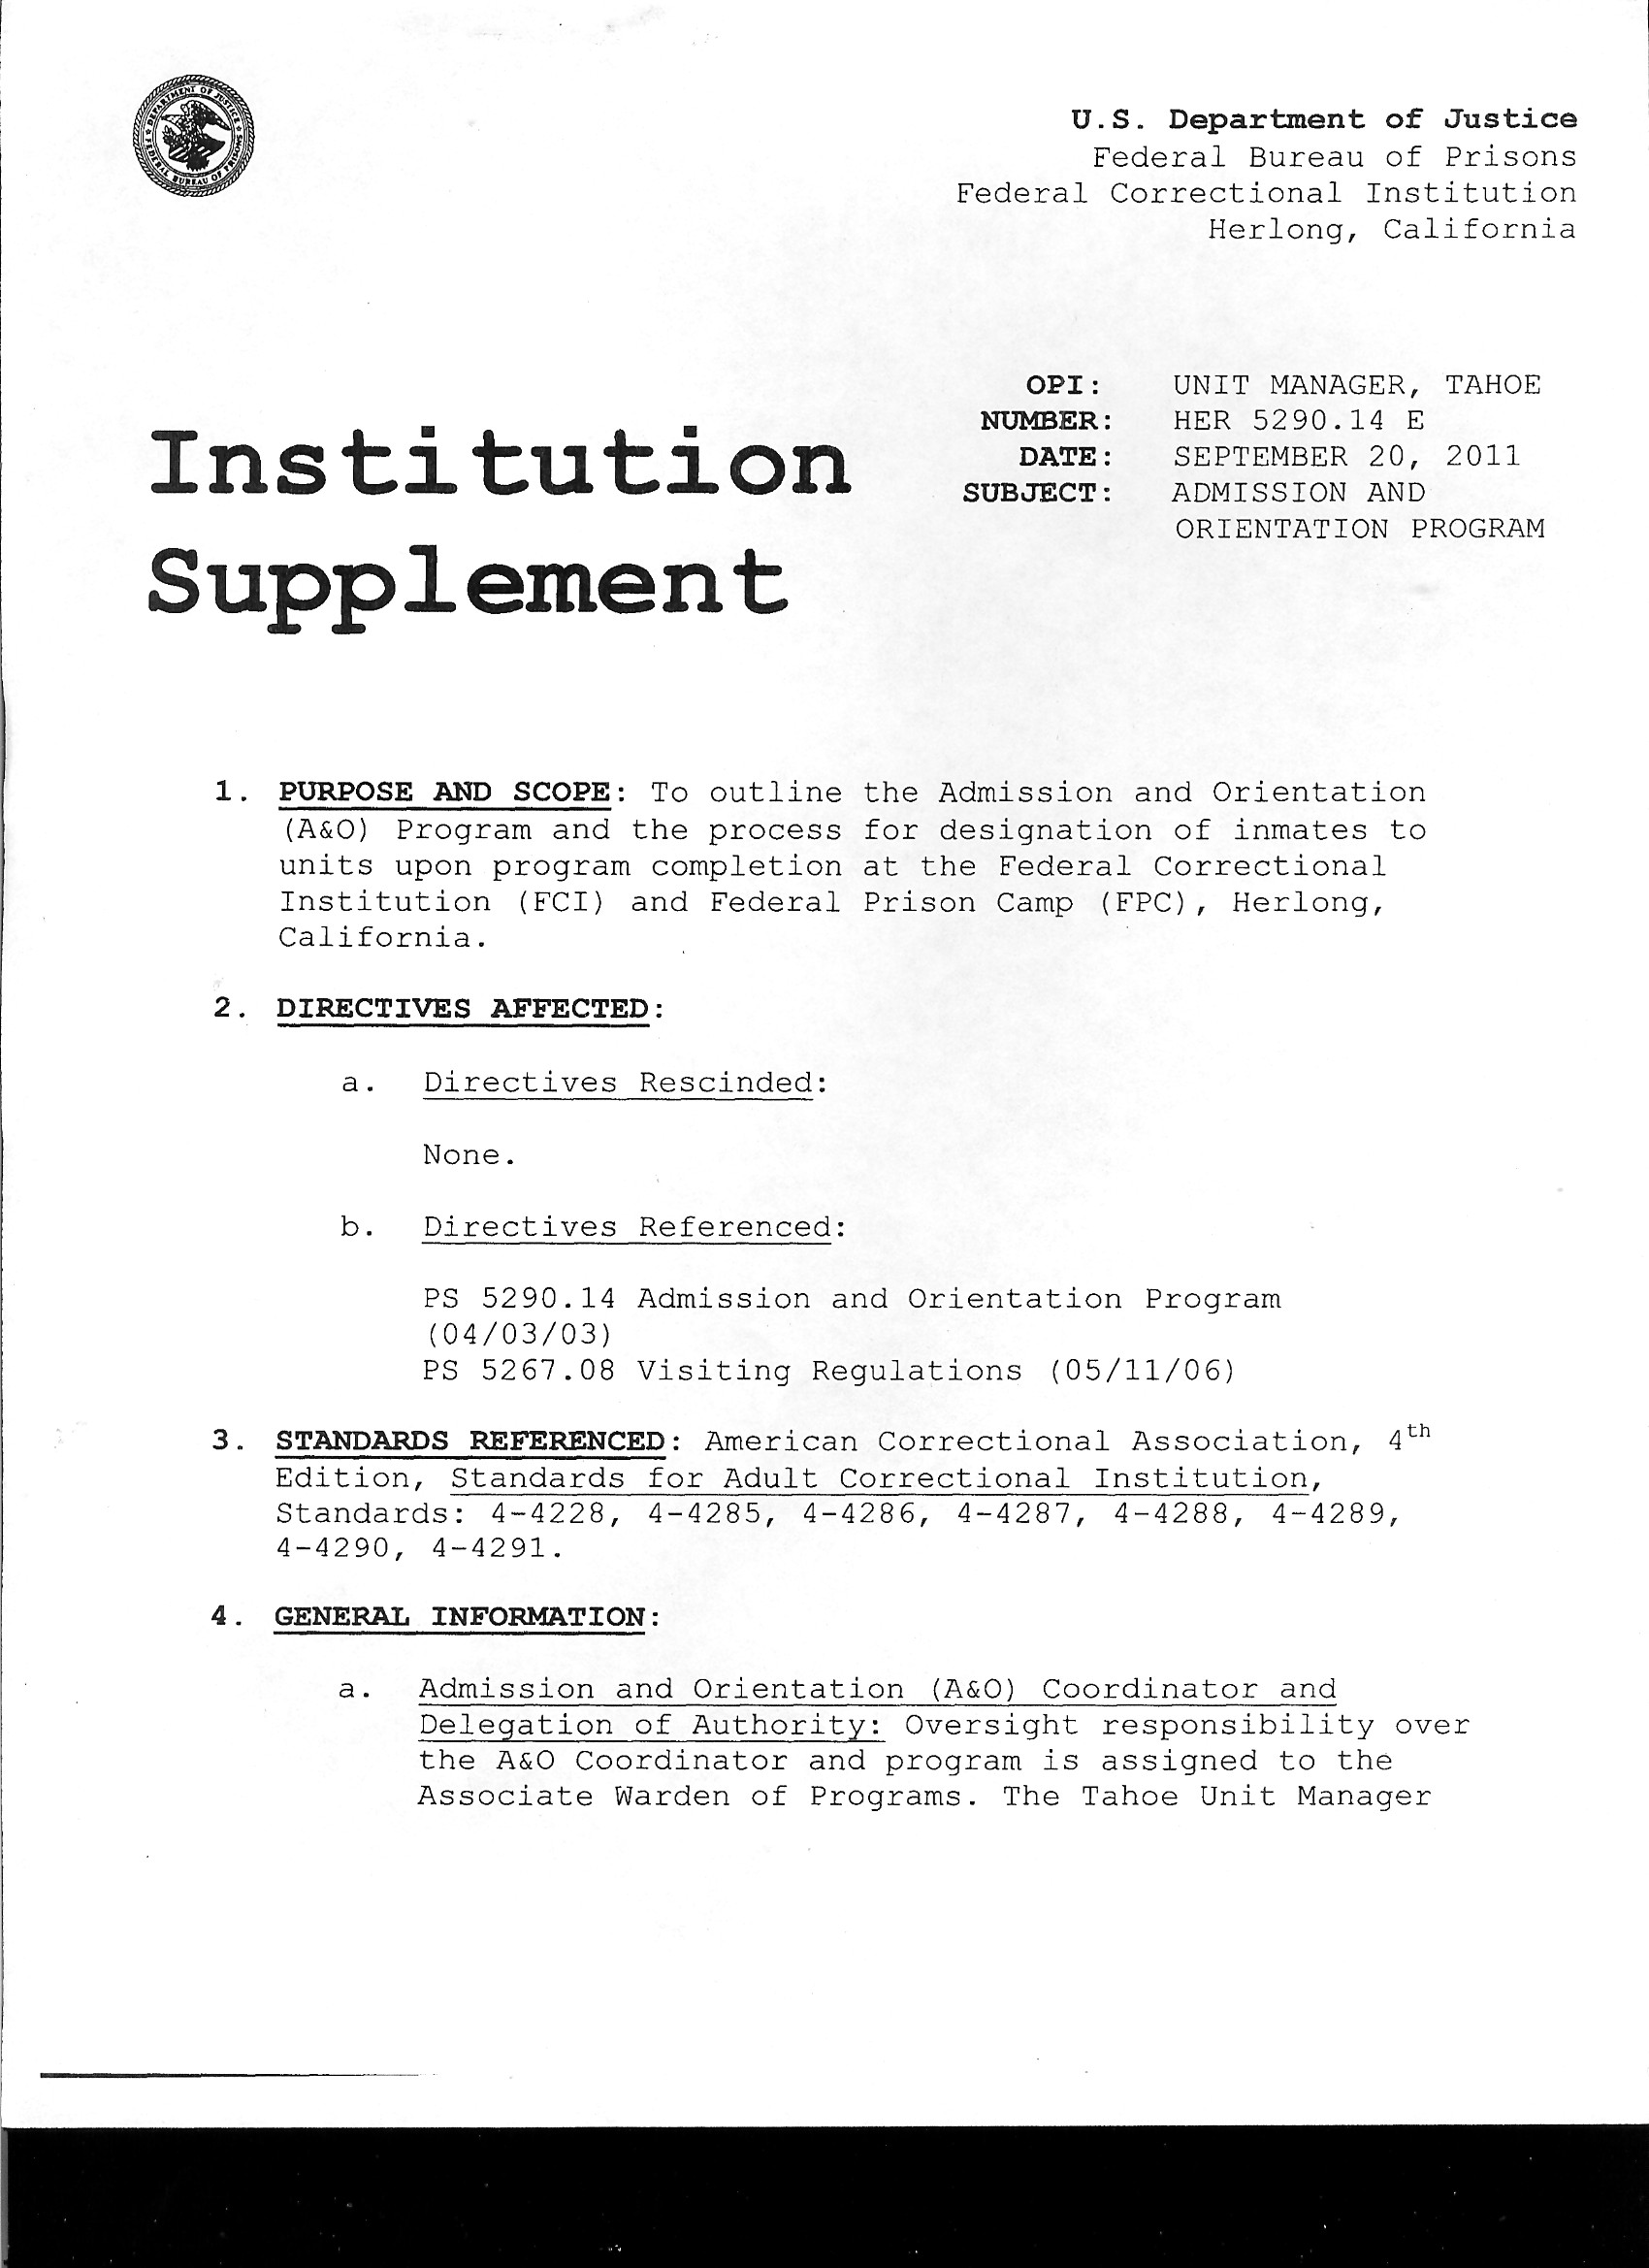 Institution Supplement 01